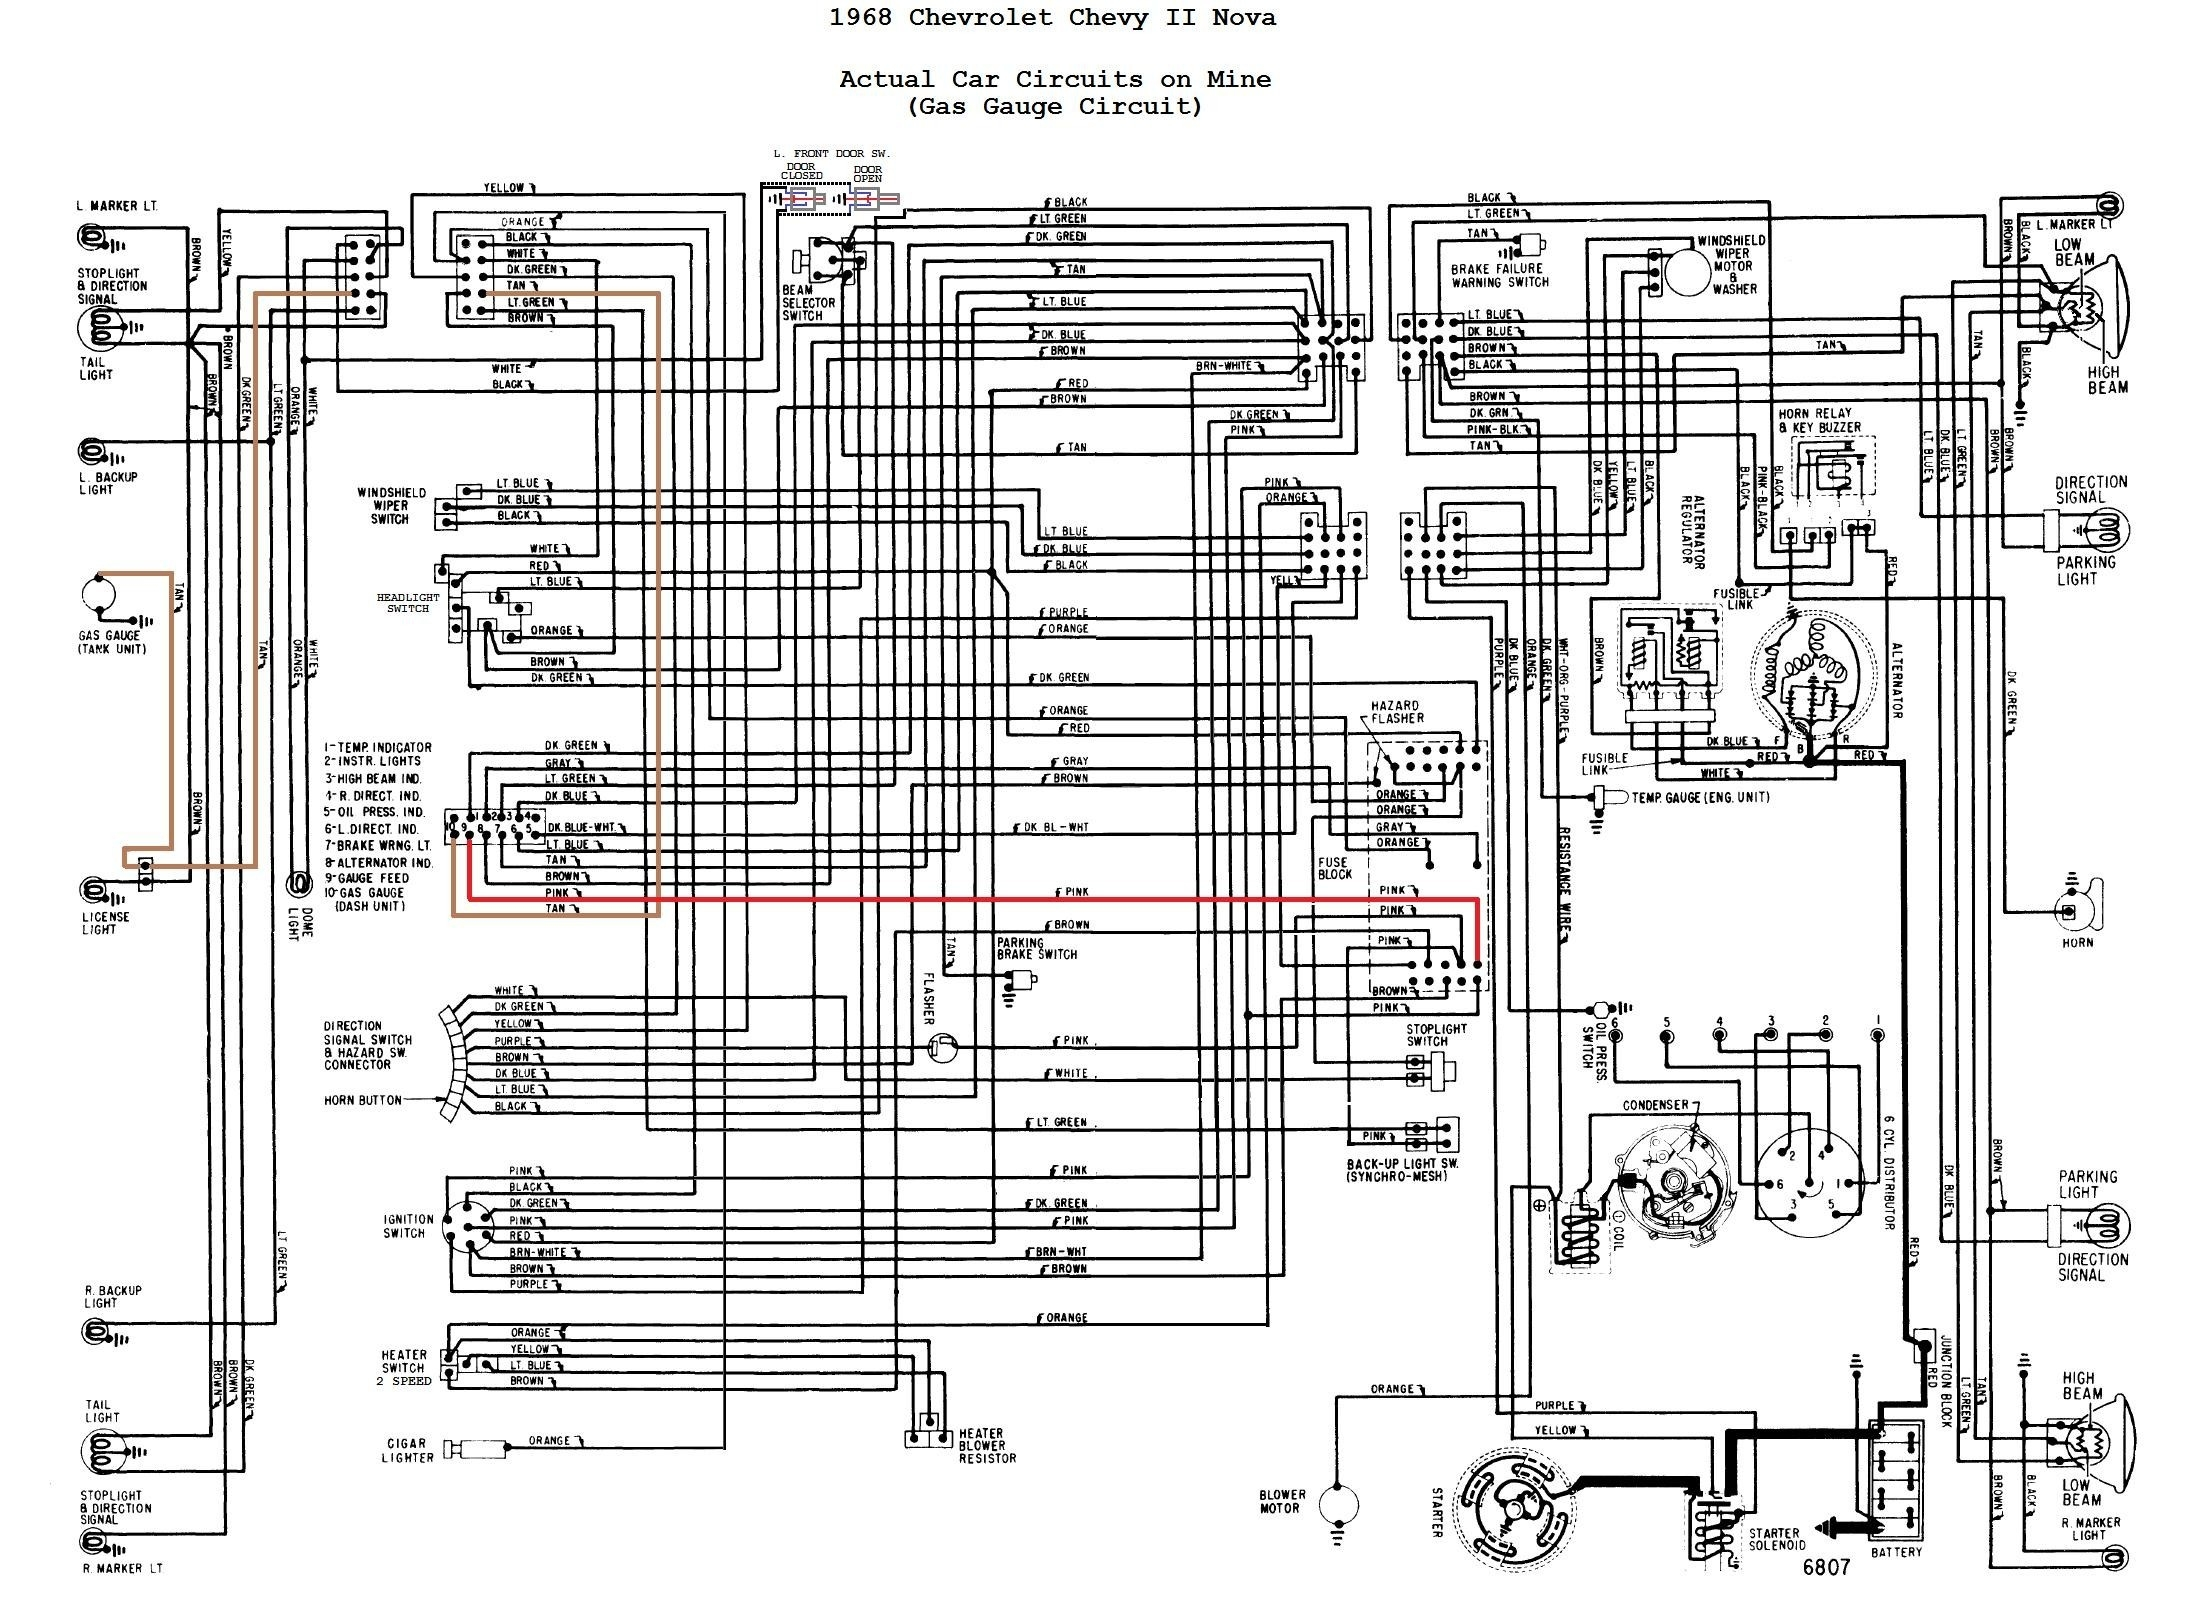 69 C10 Guage Amp Wiring Diagram Pontiac 400 Distributor Wire Good 1st Diagrams Rh 81 Crocodilecruisedarwin Com 67 Firebird 1969